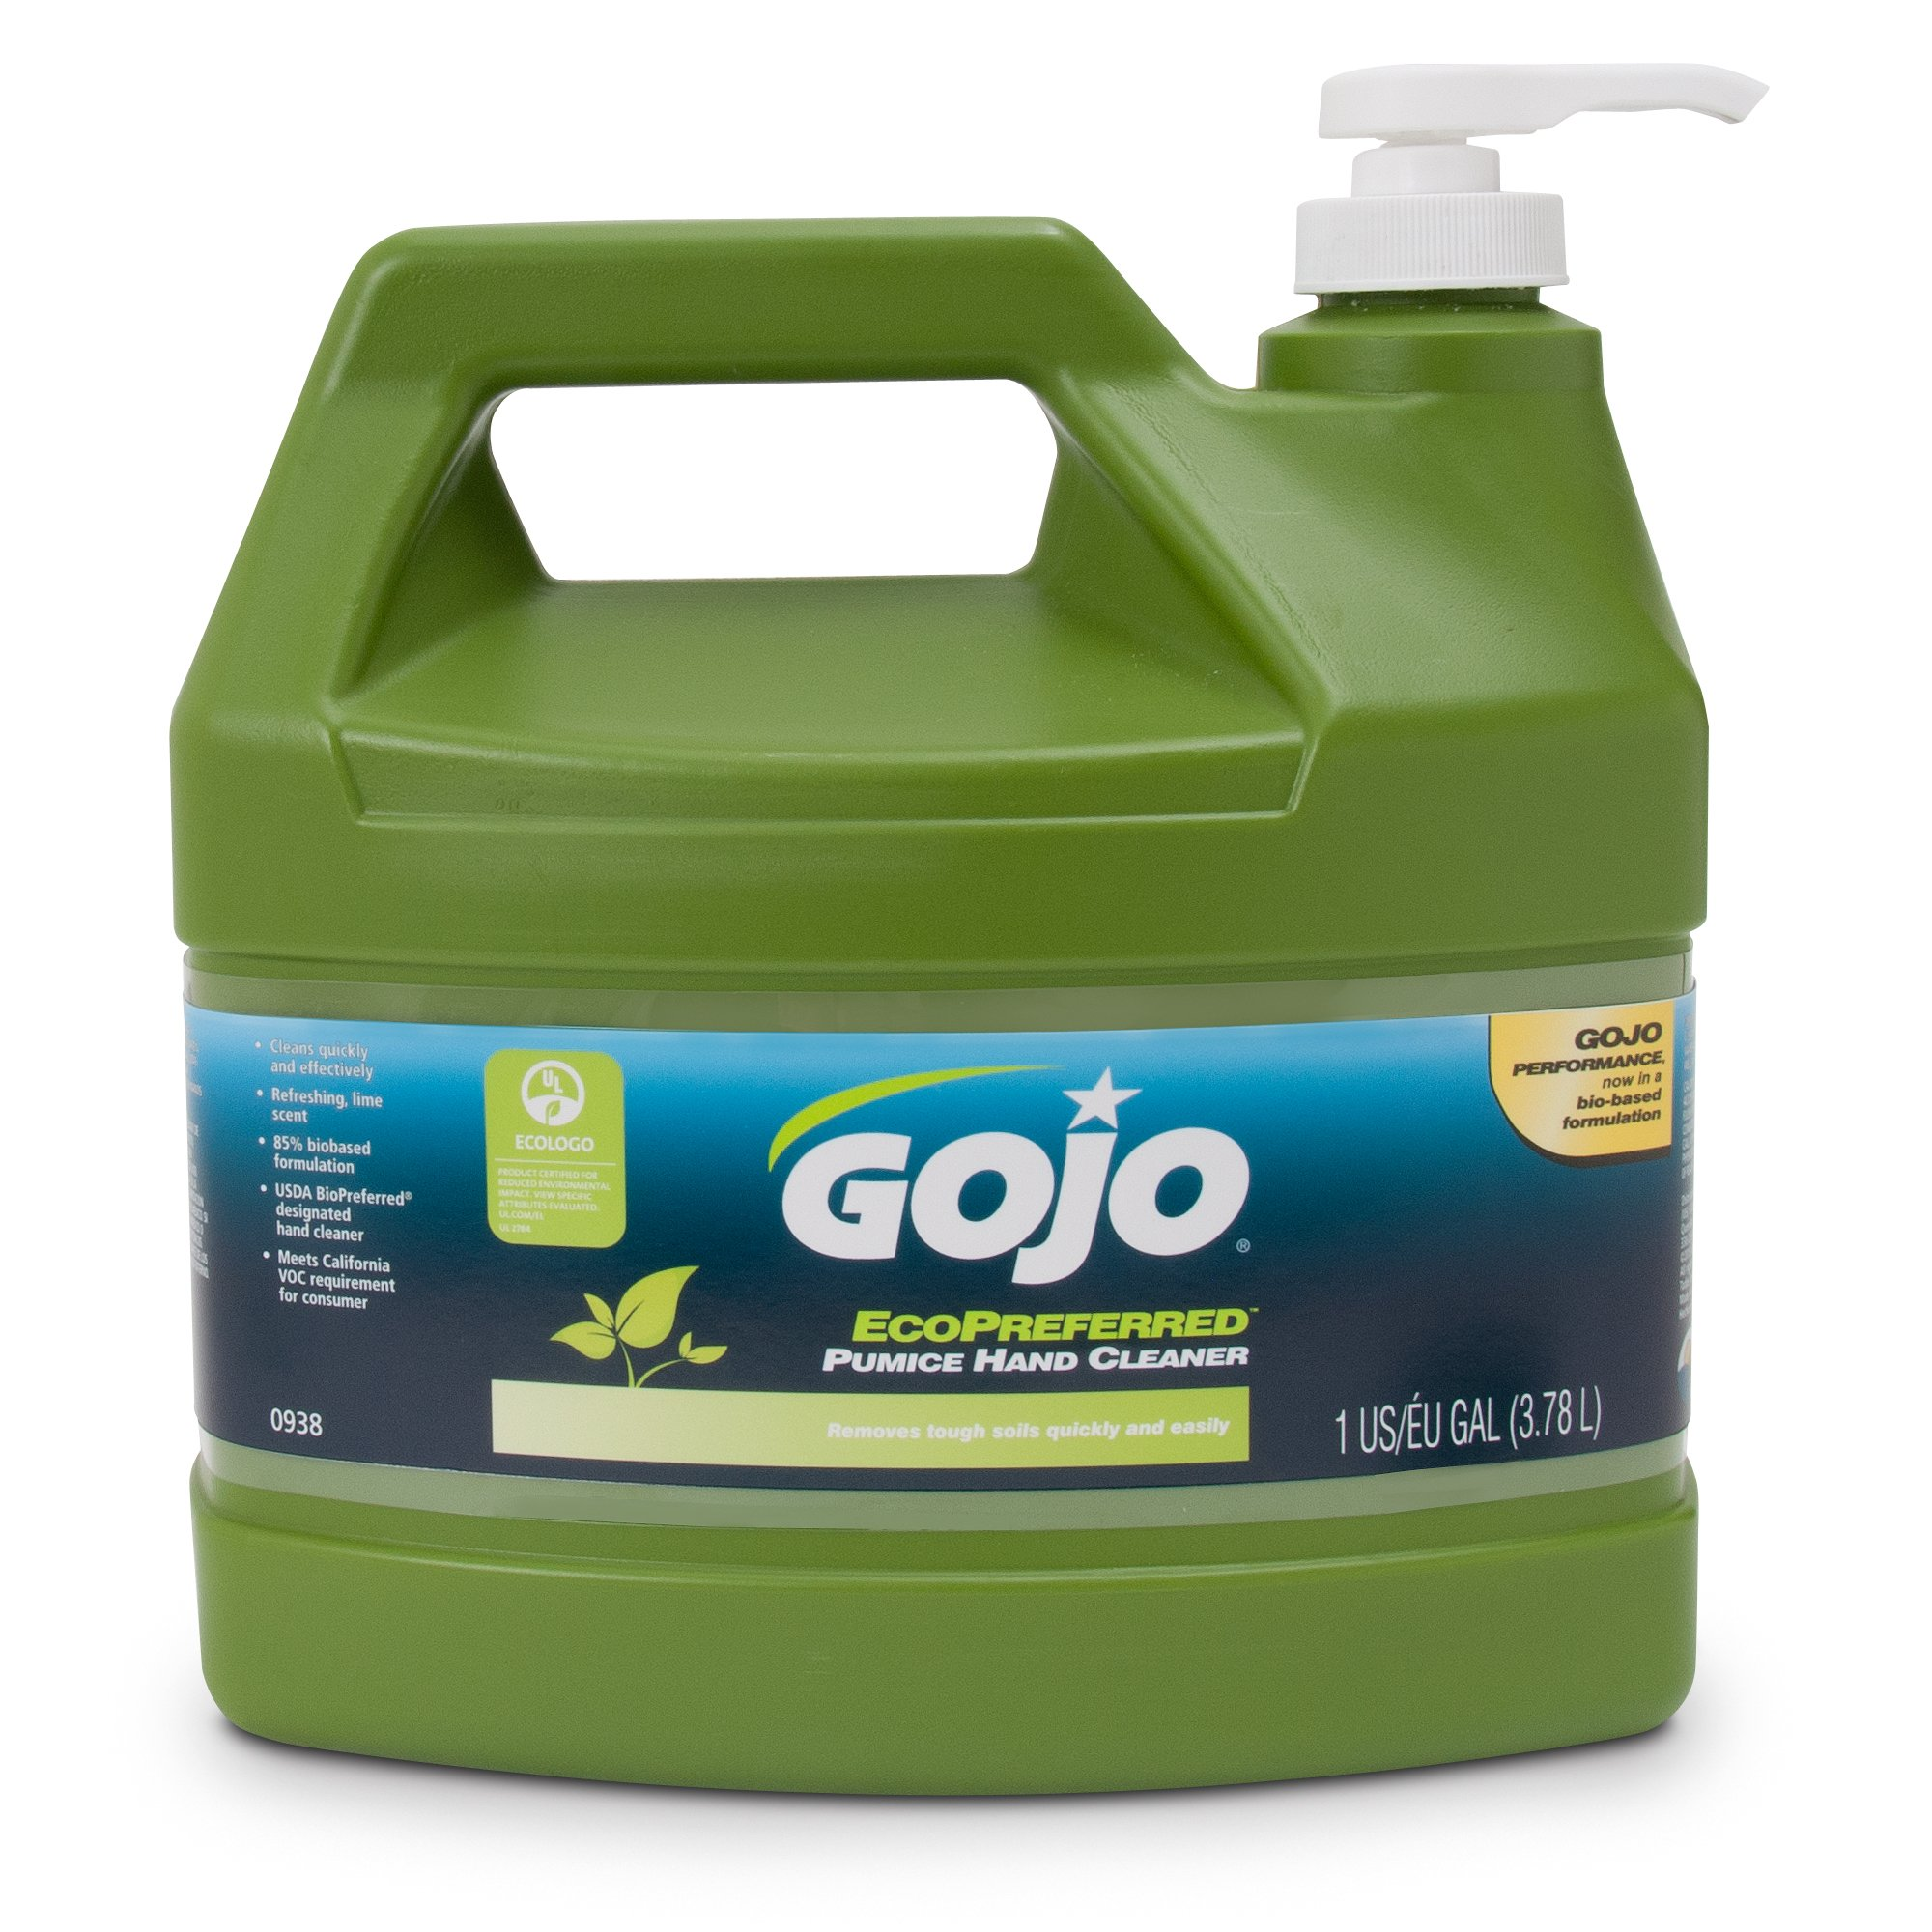 GOJO 0938-04 Ecopreferred Pumice Hand Cleaner 1 Gallon Pump Dispenser (Pack of 4)